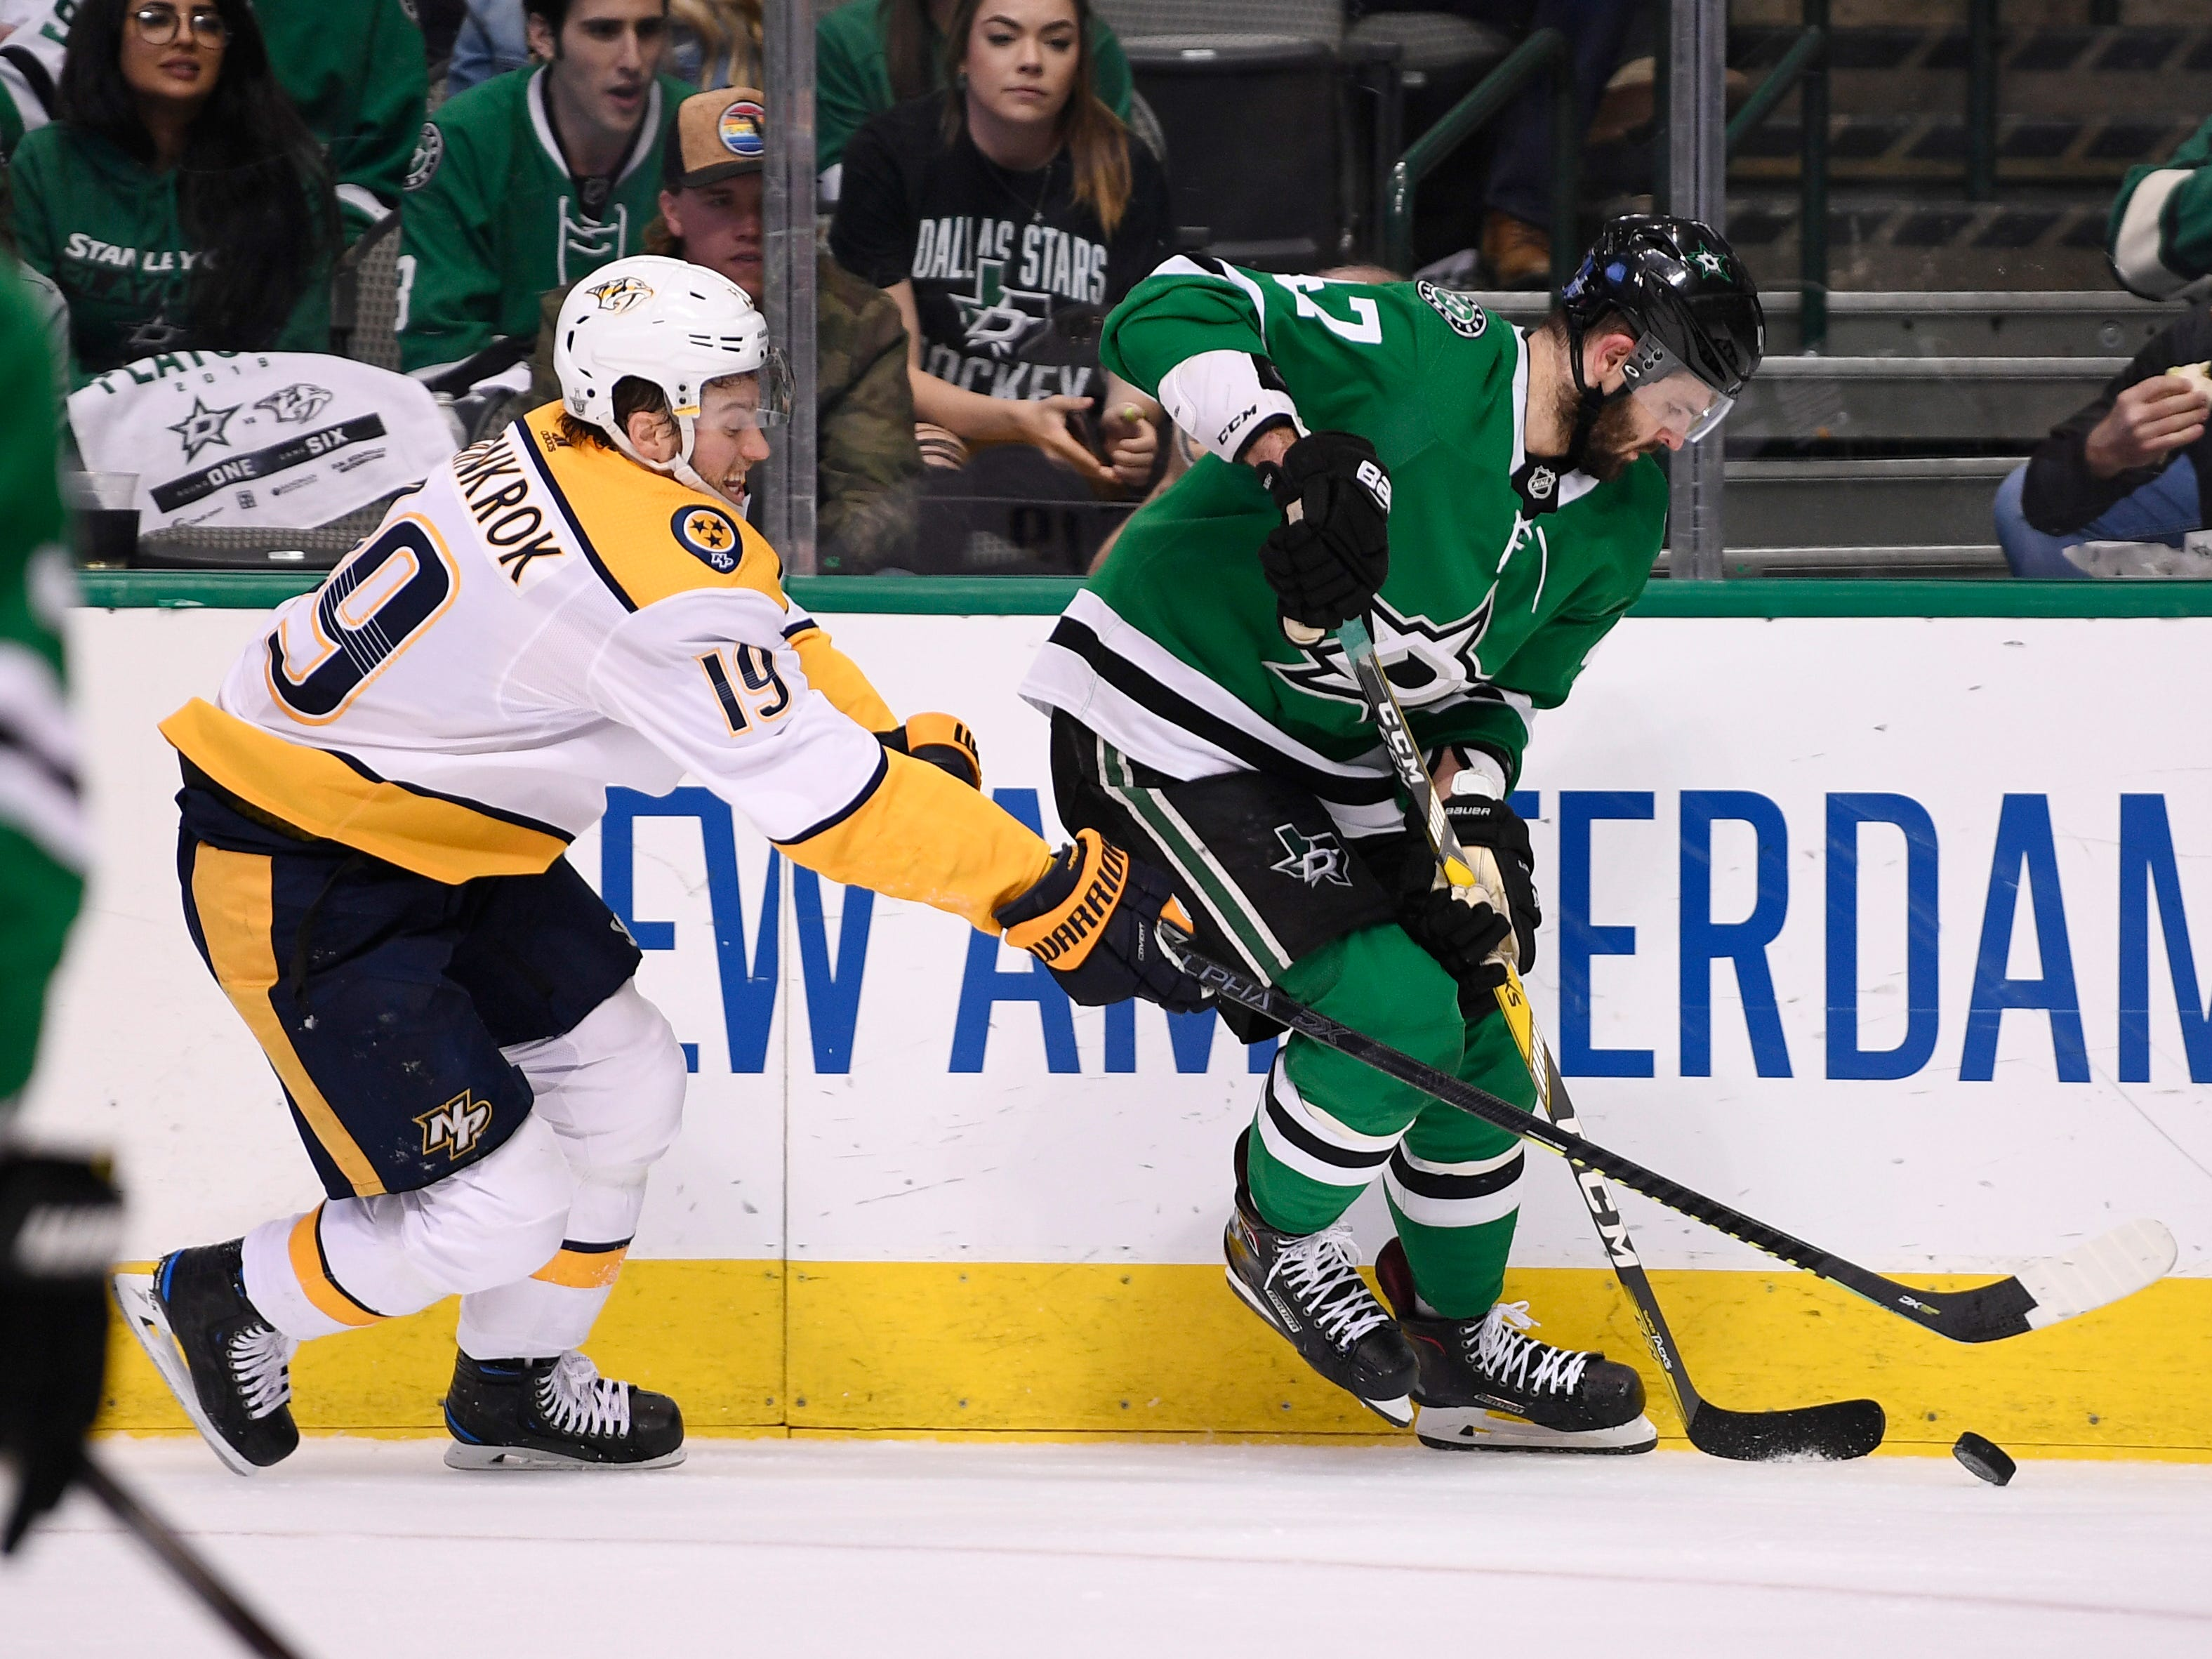 Dallas Stars right wing Alexander Radulov (47) moves the puck defended by Nashville Predators center Calle Jarnkrok (19) during the first period of the divisional semifinal game at the American Airlines Center in Dallas, Texas, Monday, April 22, 2019.